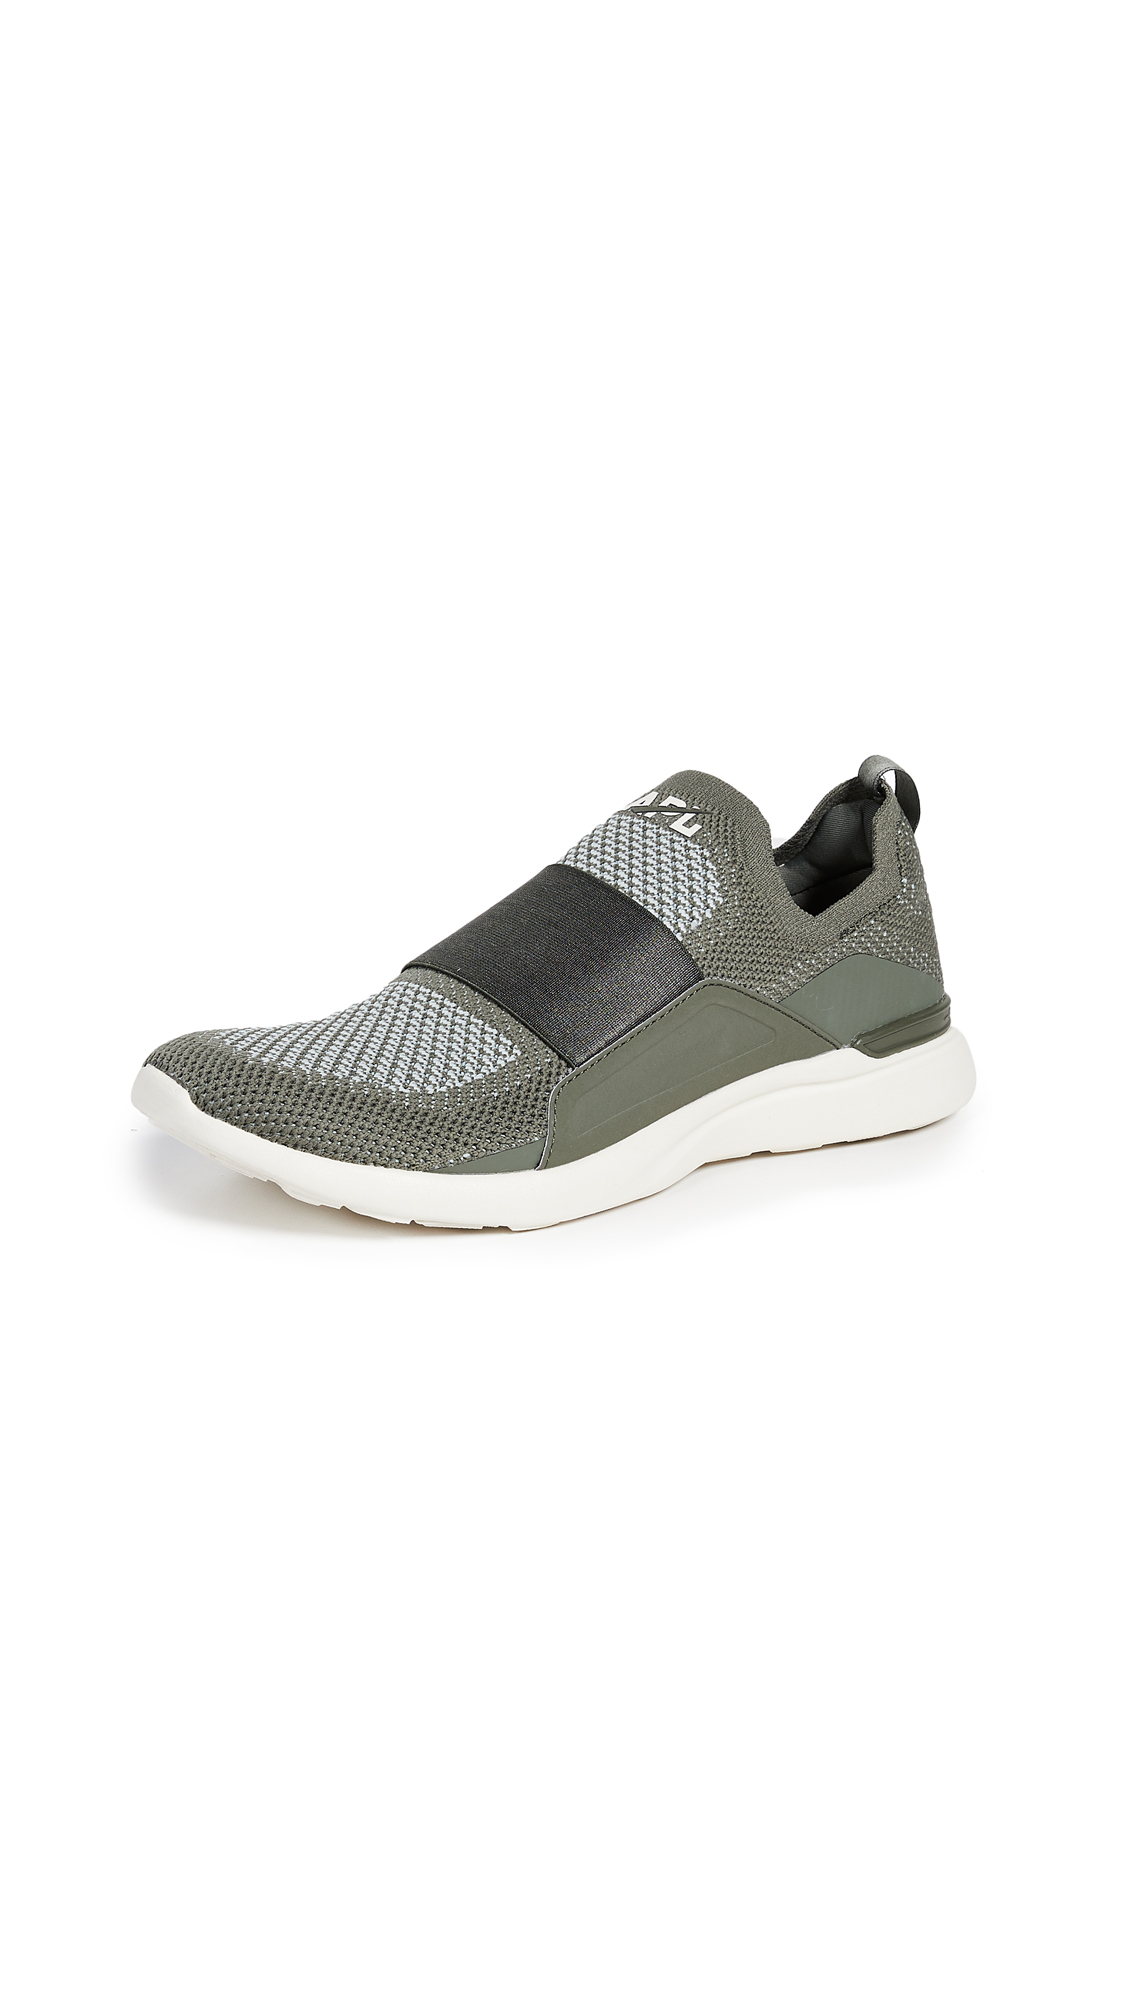 APL: Athletic Propulsion Labs TechLoom Bliss Sneakers - Fatigue/Aqua Grey/Pristine